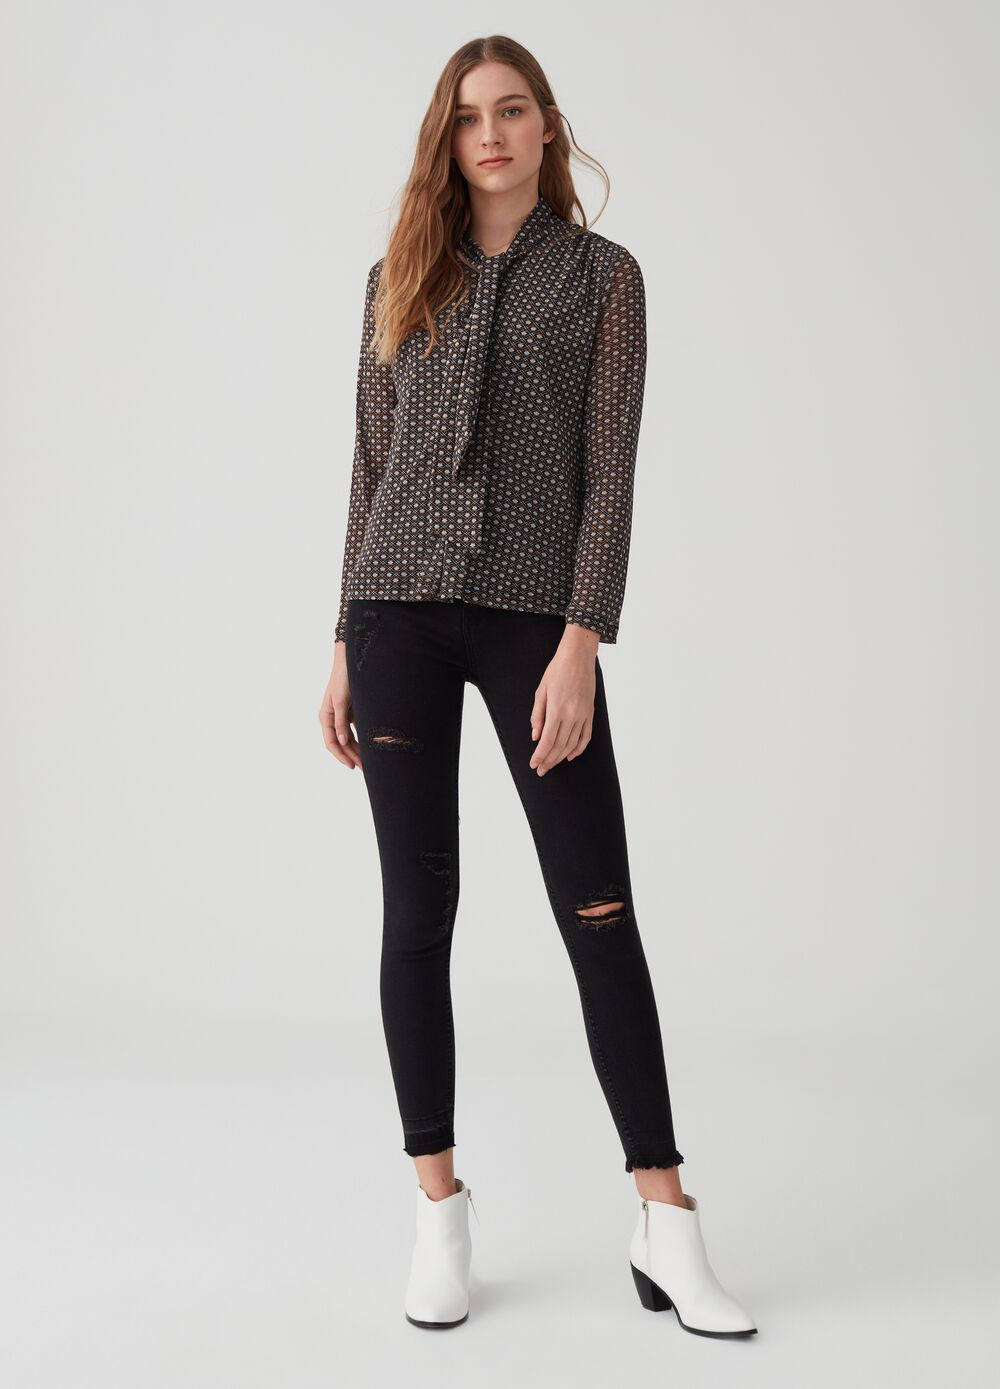 Superskinny jeans with rips